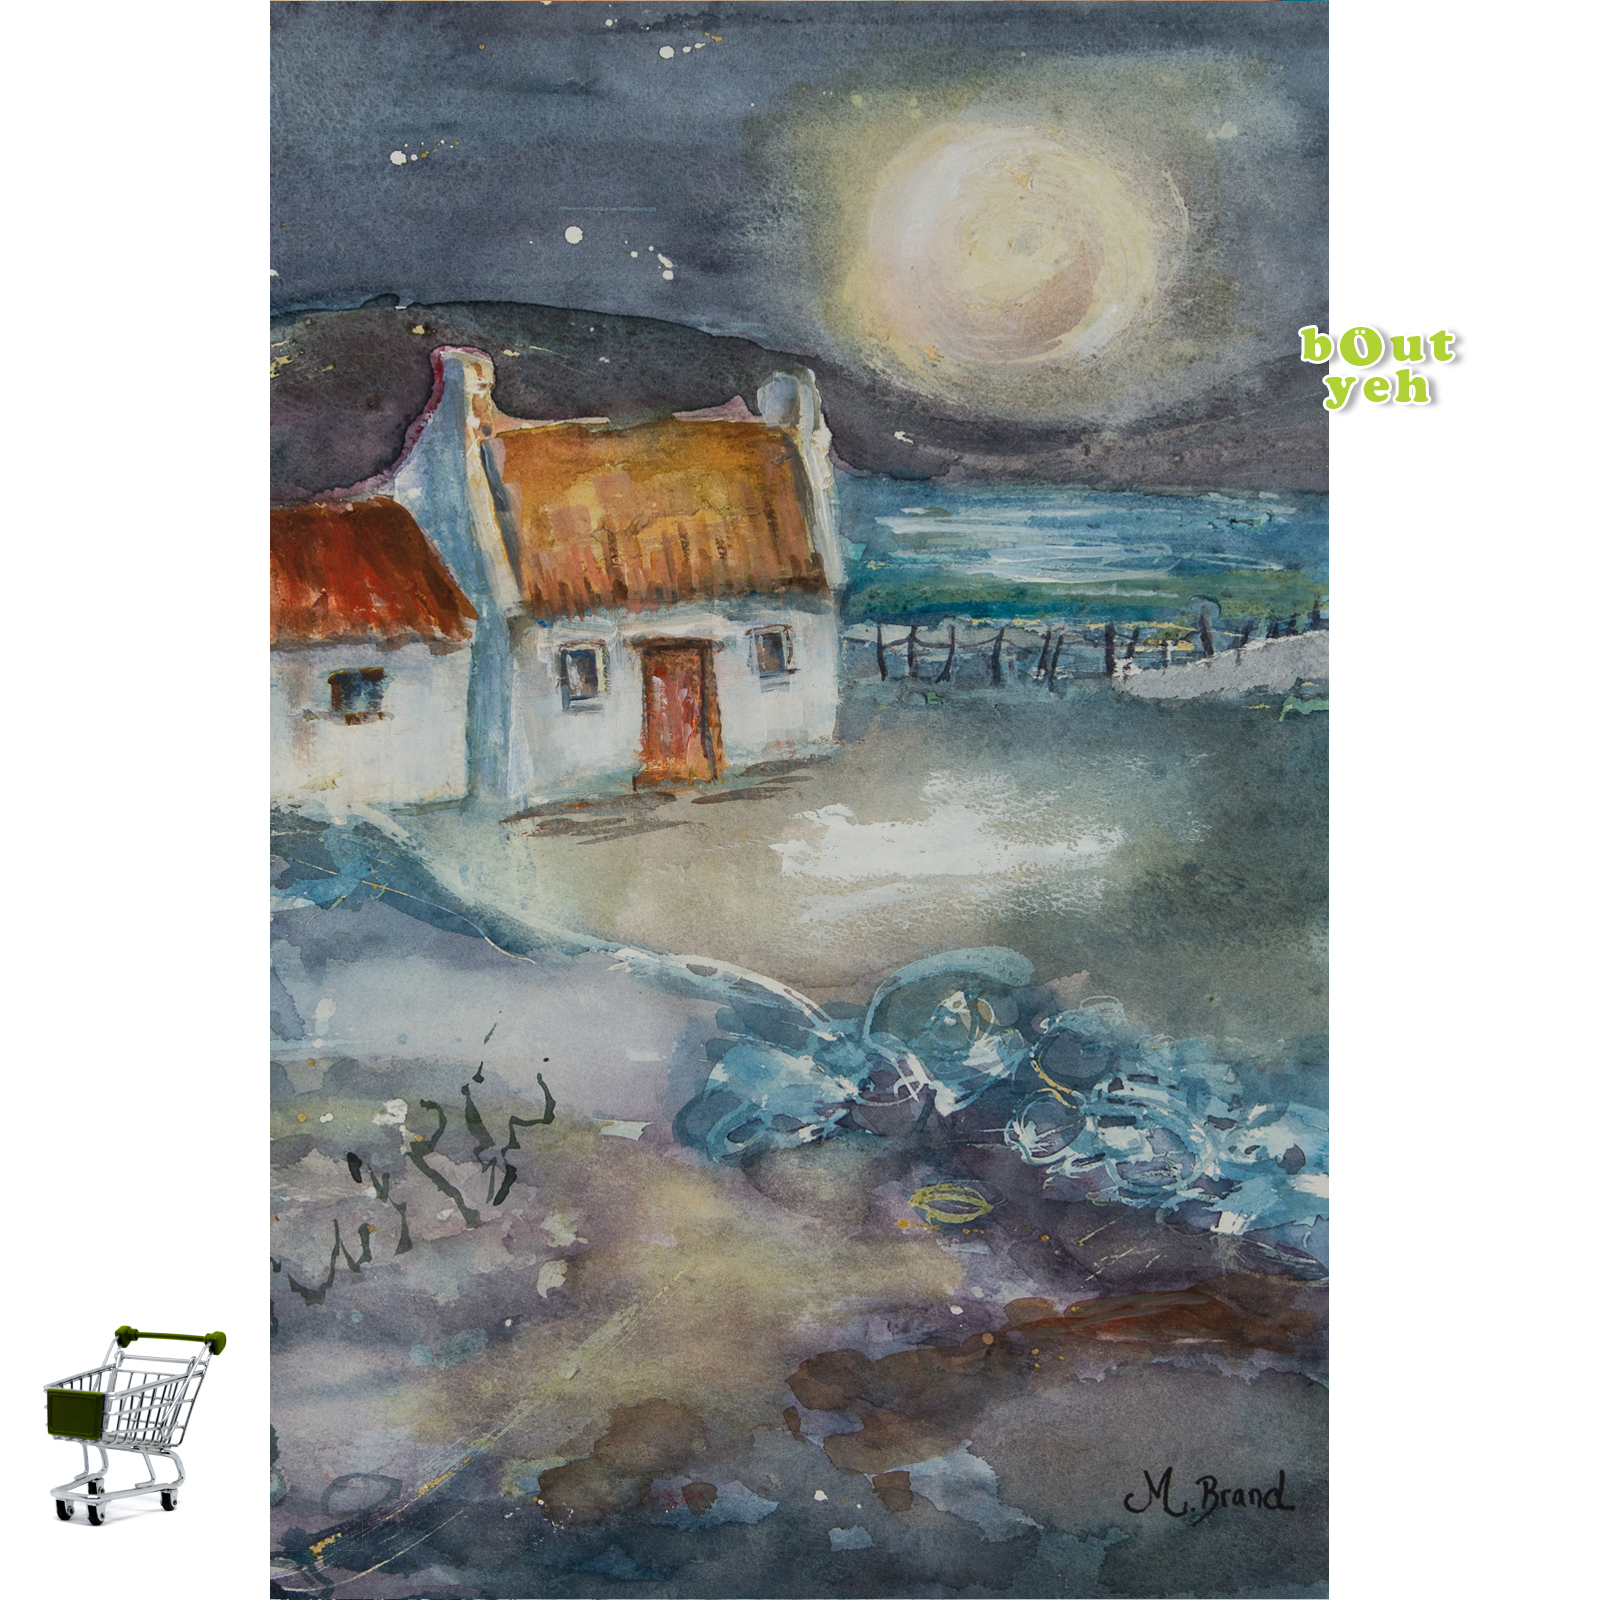 Irish landscape painting with shopping cart icon - photo 5627. Bout Yeh photographers art gallery Belfast Northern Ireland.